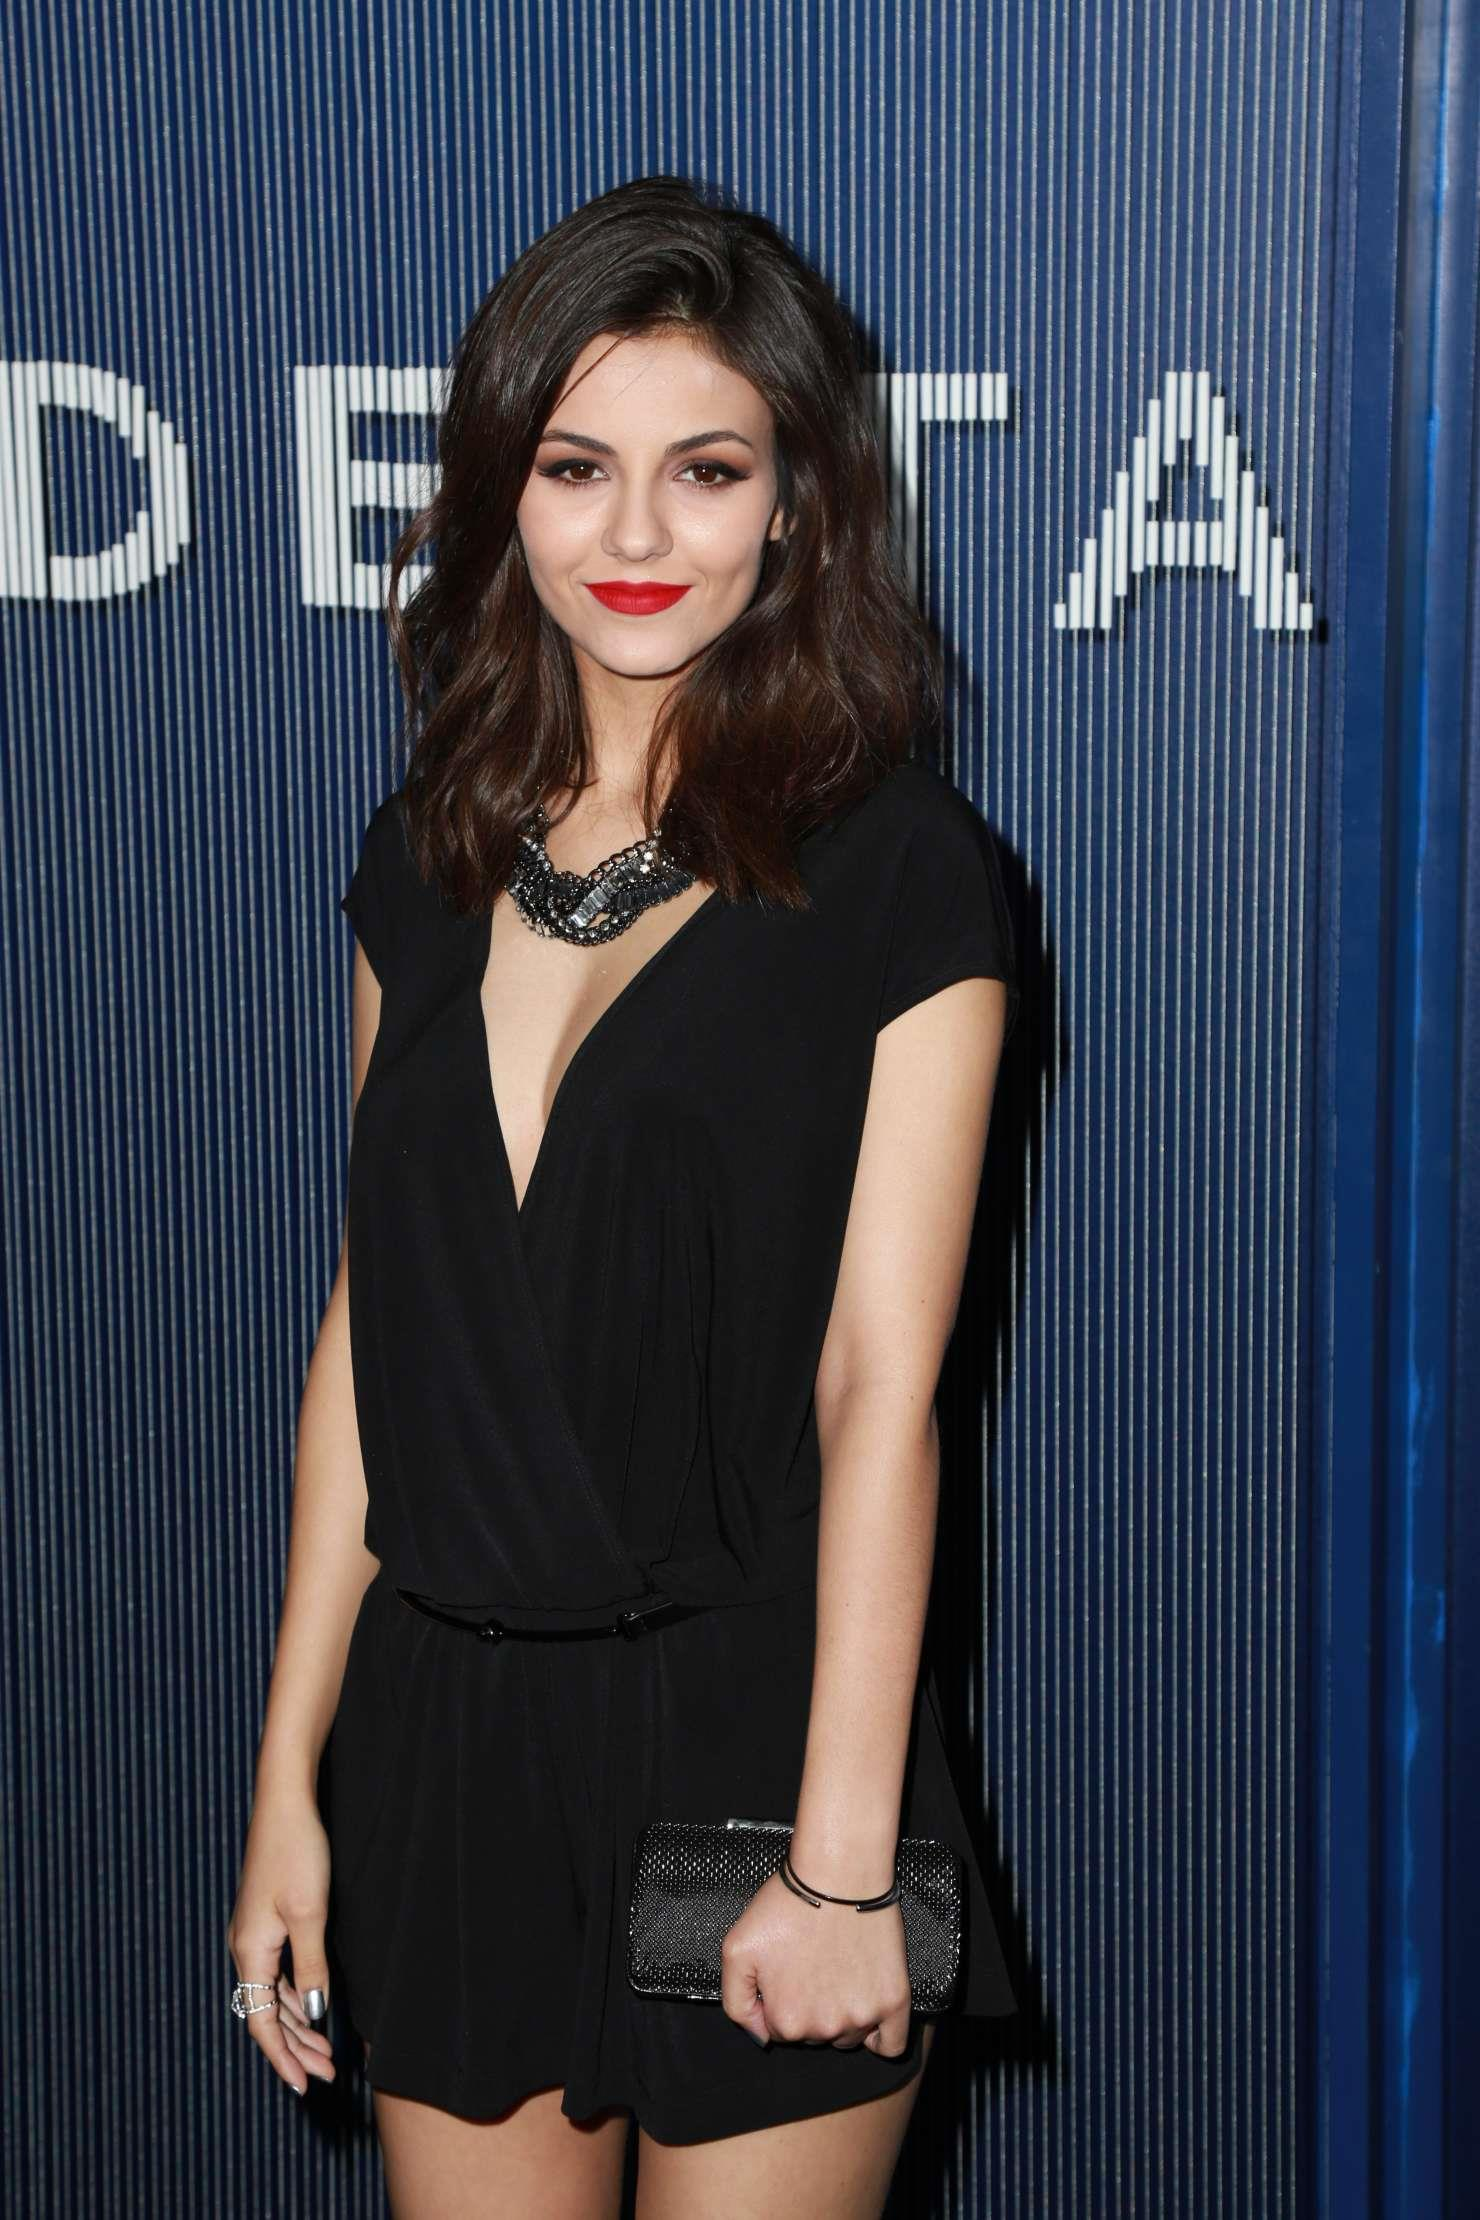 Wallpaper Quotes Hindi Victoria Justice In Grammy Awards 2015